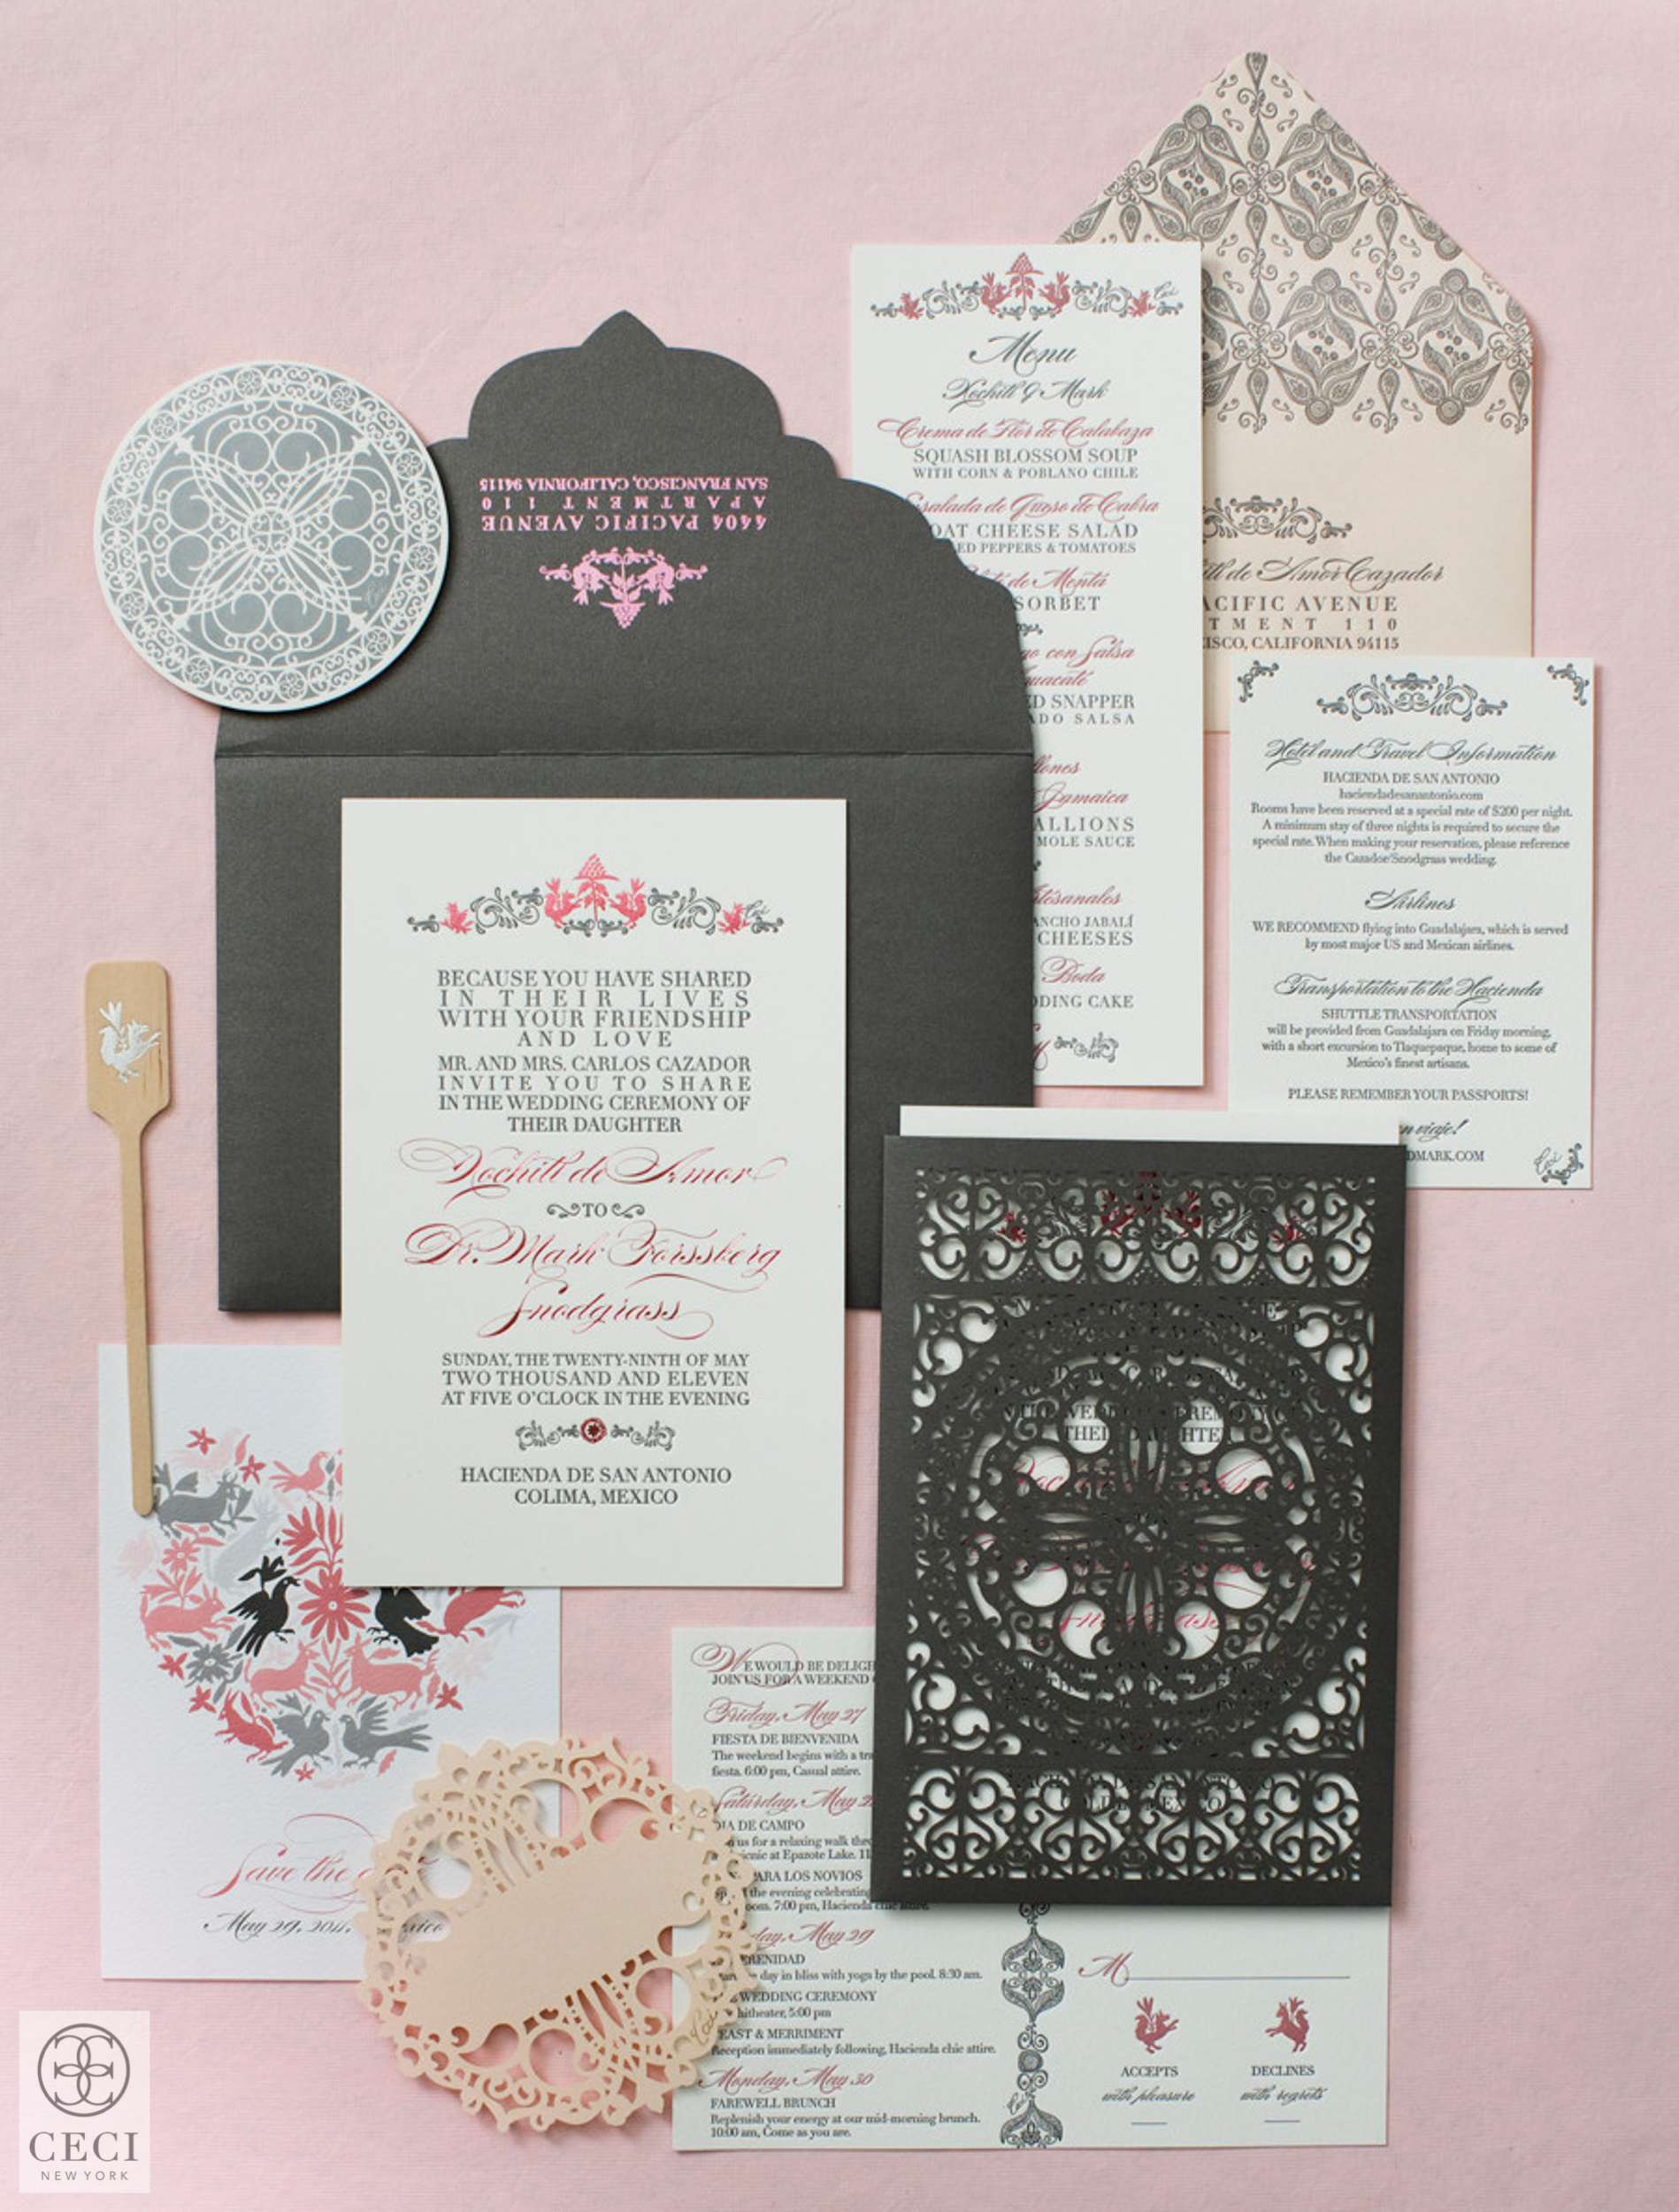 Ceci_New_York_Custom_Luxury_Wedding_LaserCut_Stationery_Personalized_Couture_Foil_Stamping_Mexico_Otomi_Chic_-22.jpg